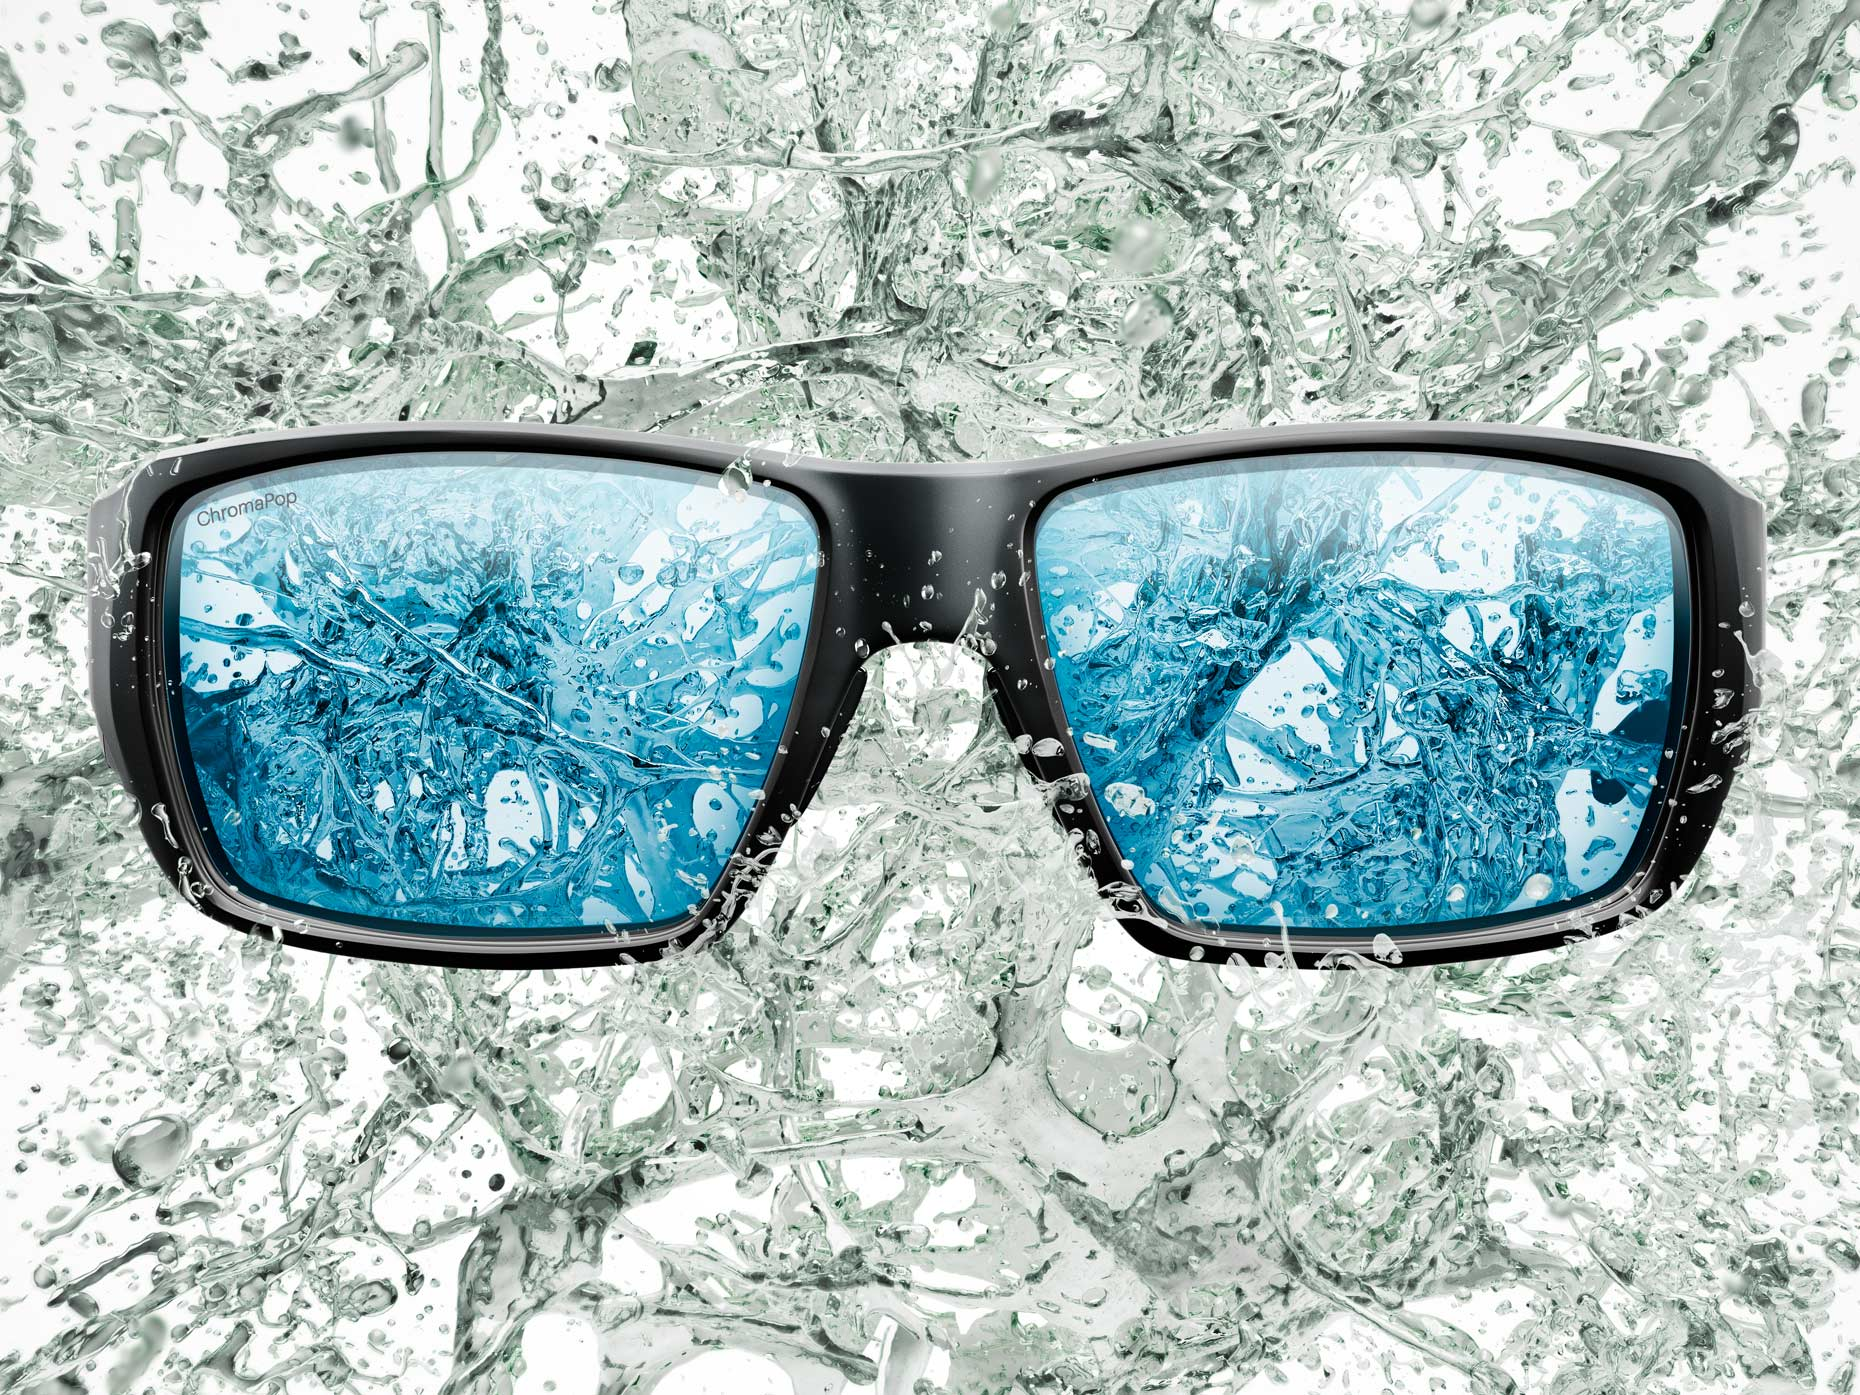 Smith Optics Image Composite, Effects and Retouching